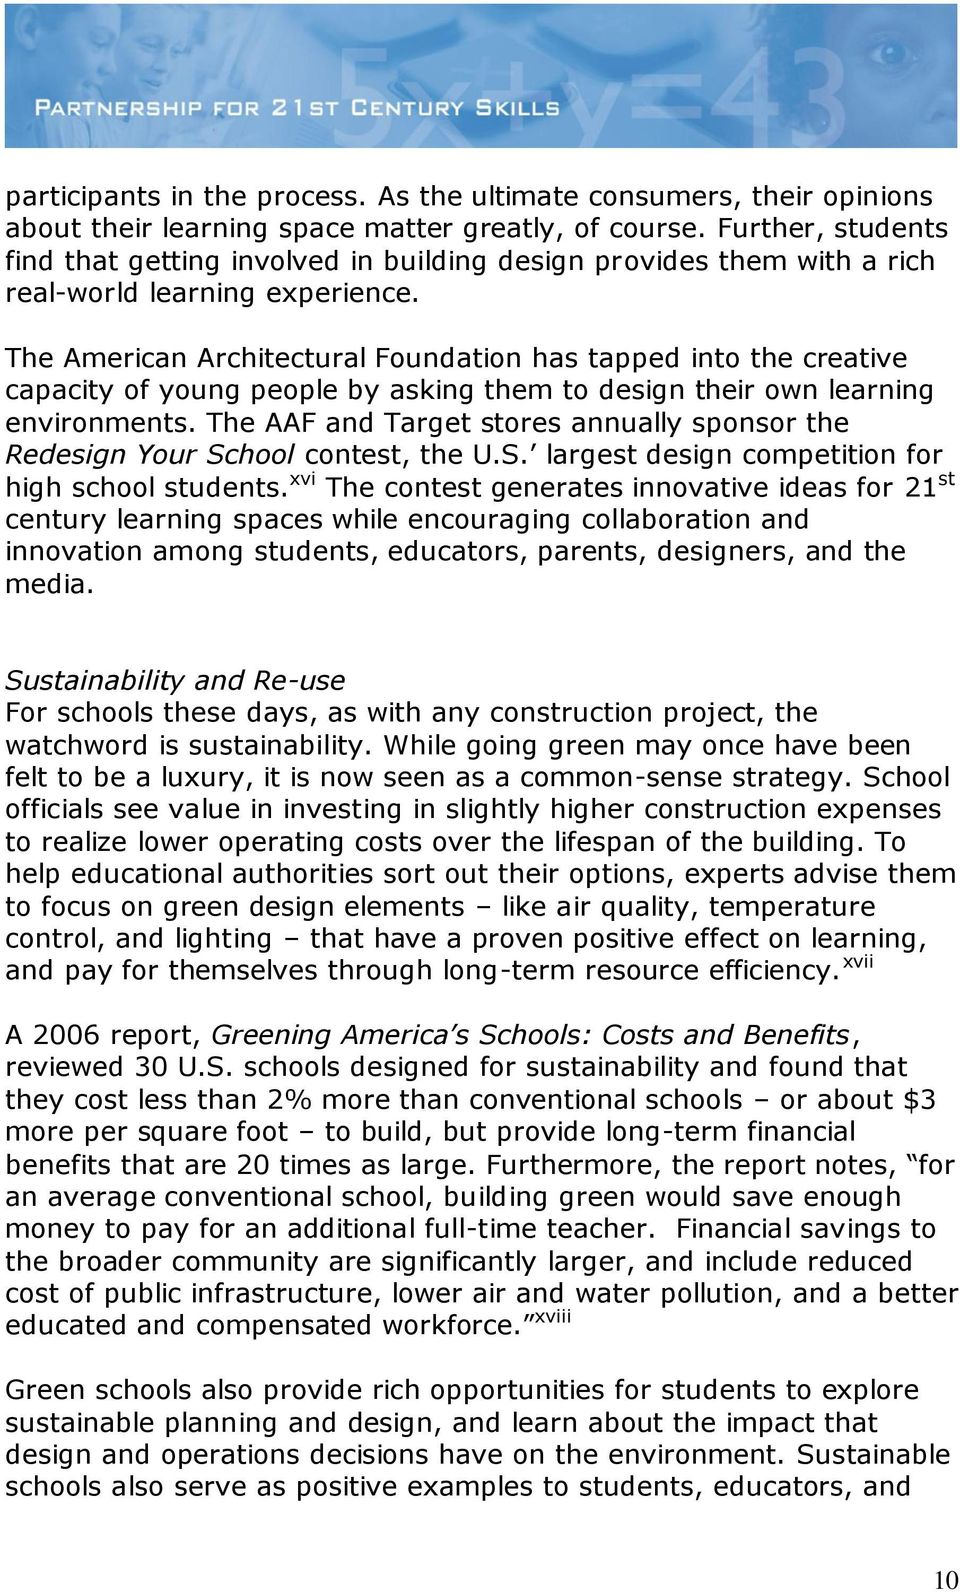 The American Architectural Foundation has tapped into the creative capacity of young people by asking them to design their own learning environments.